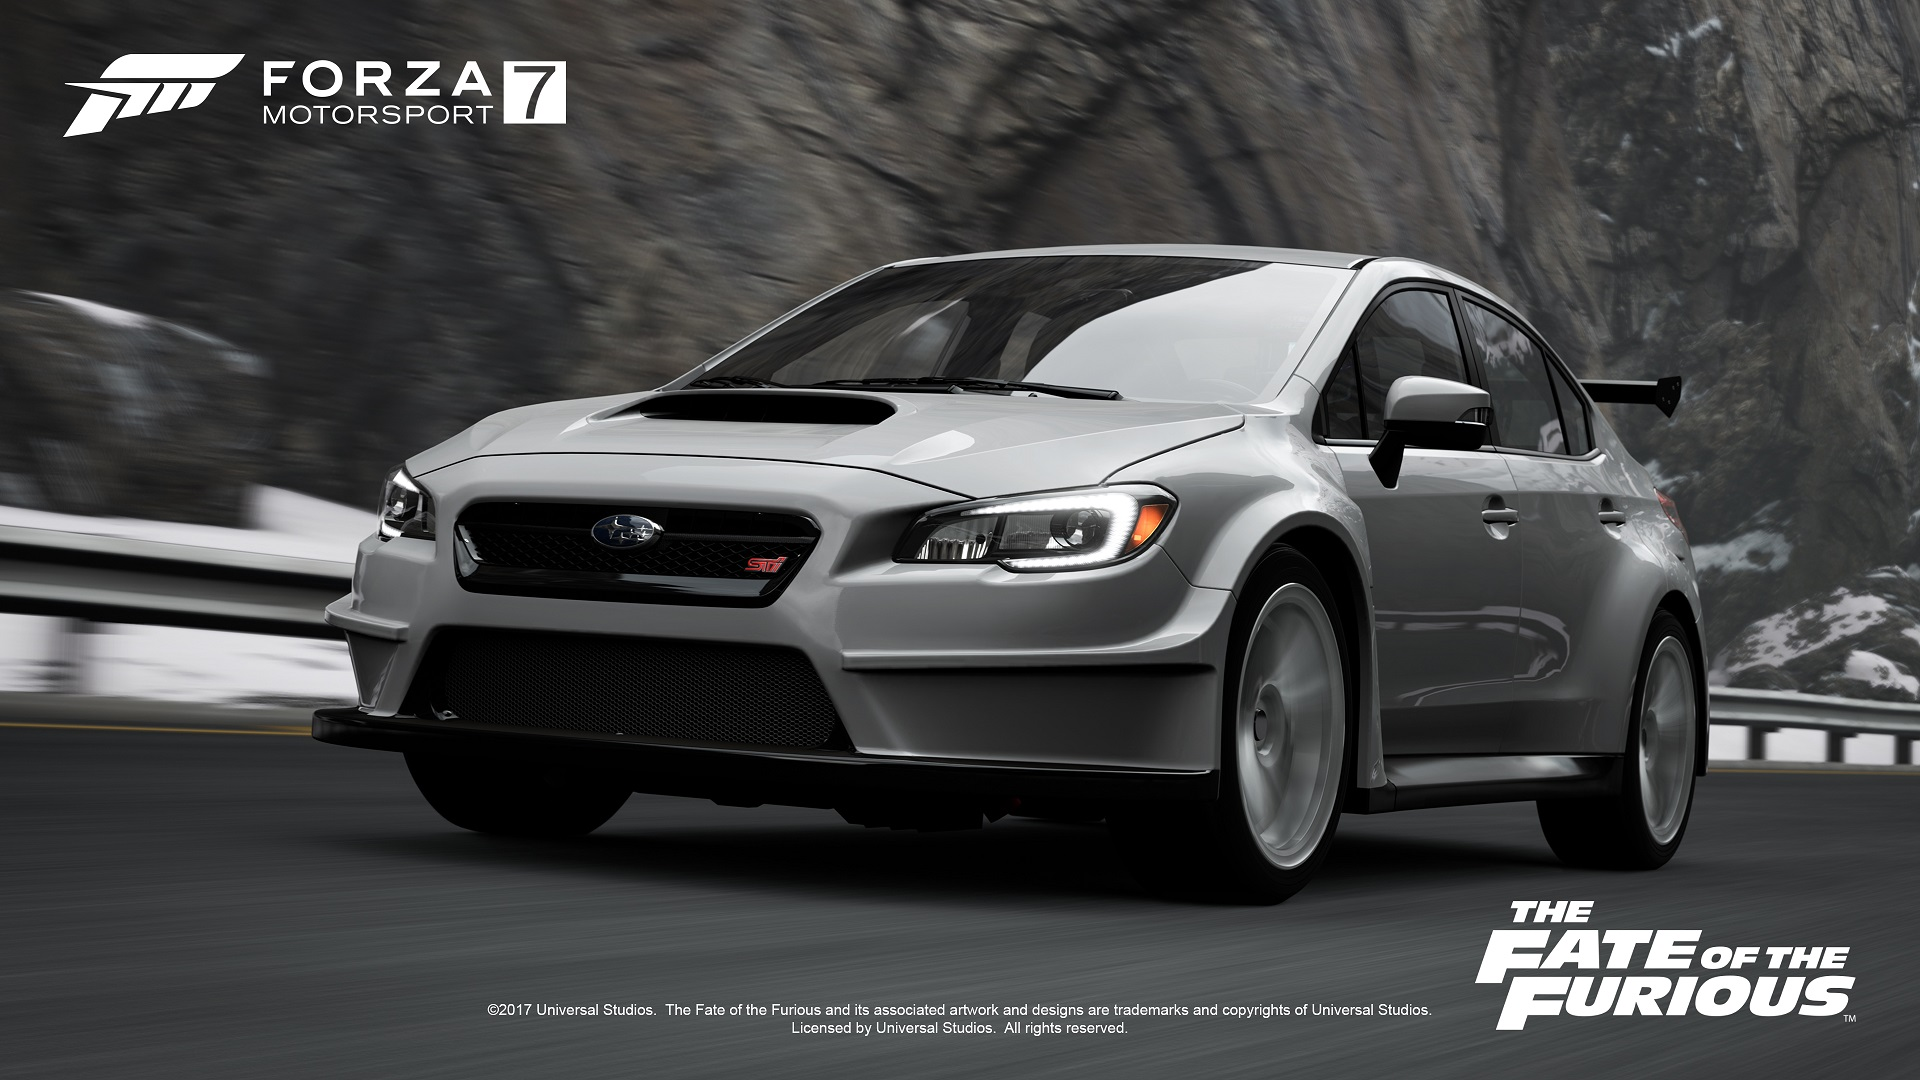 Fast And Furious 8 Cars List >> Fast and Furious 'Fate of the Furious' Car Pack Announced for 'Forza Motorsport 7' - The Drive